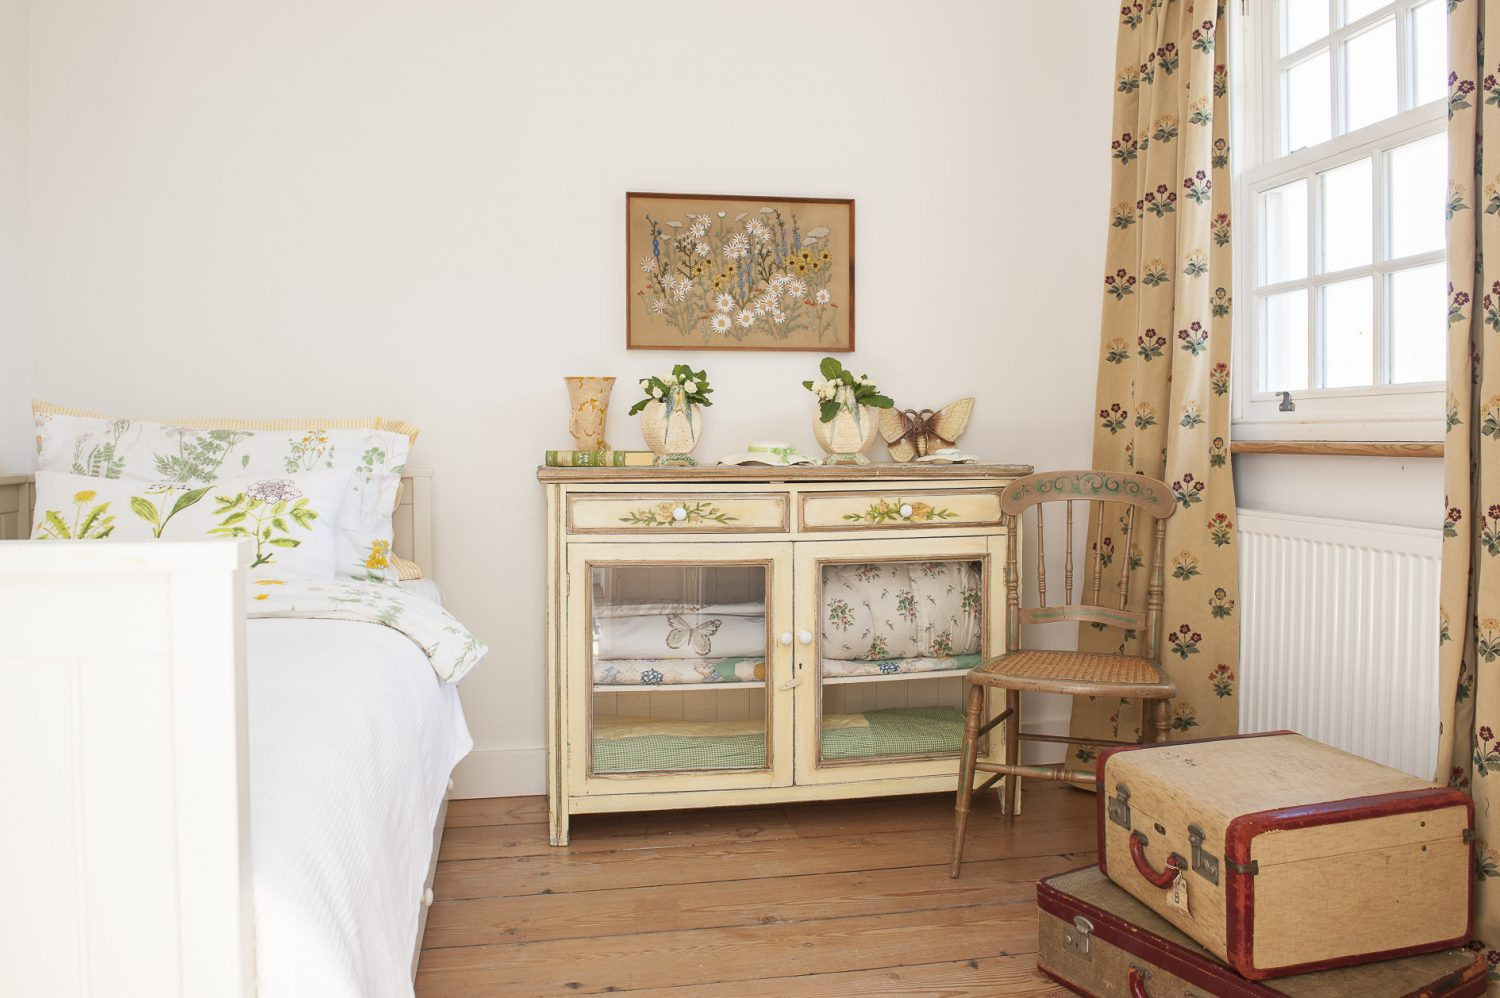 The primrose yellow guest bedroom at the front of the house